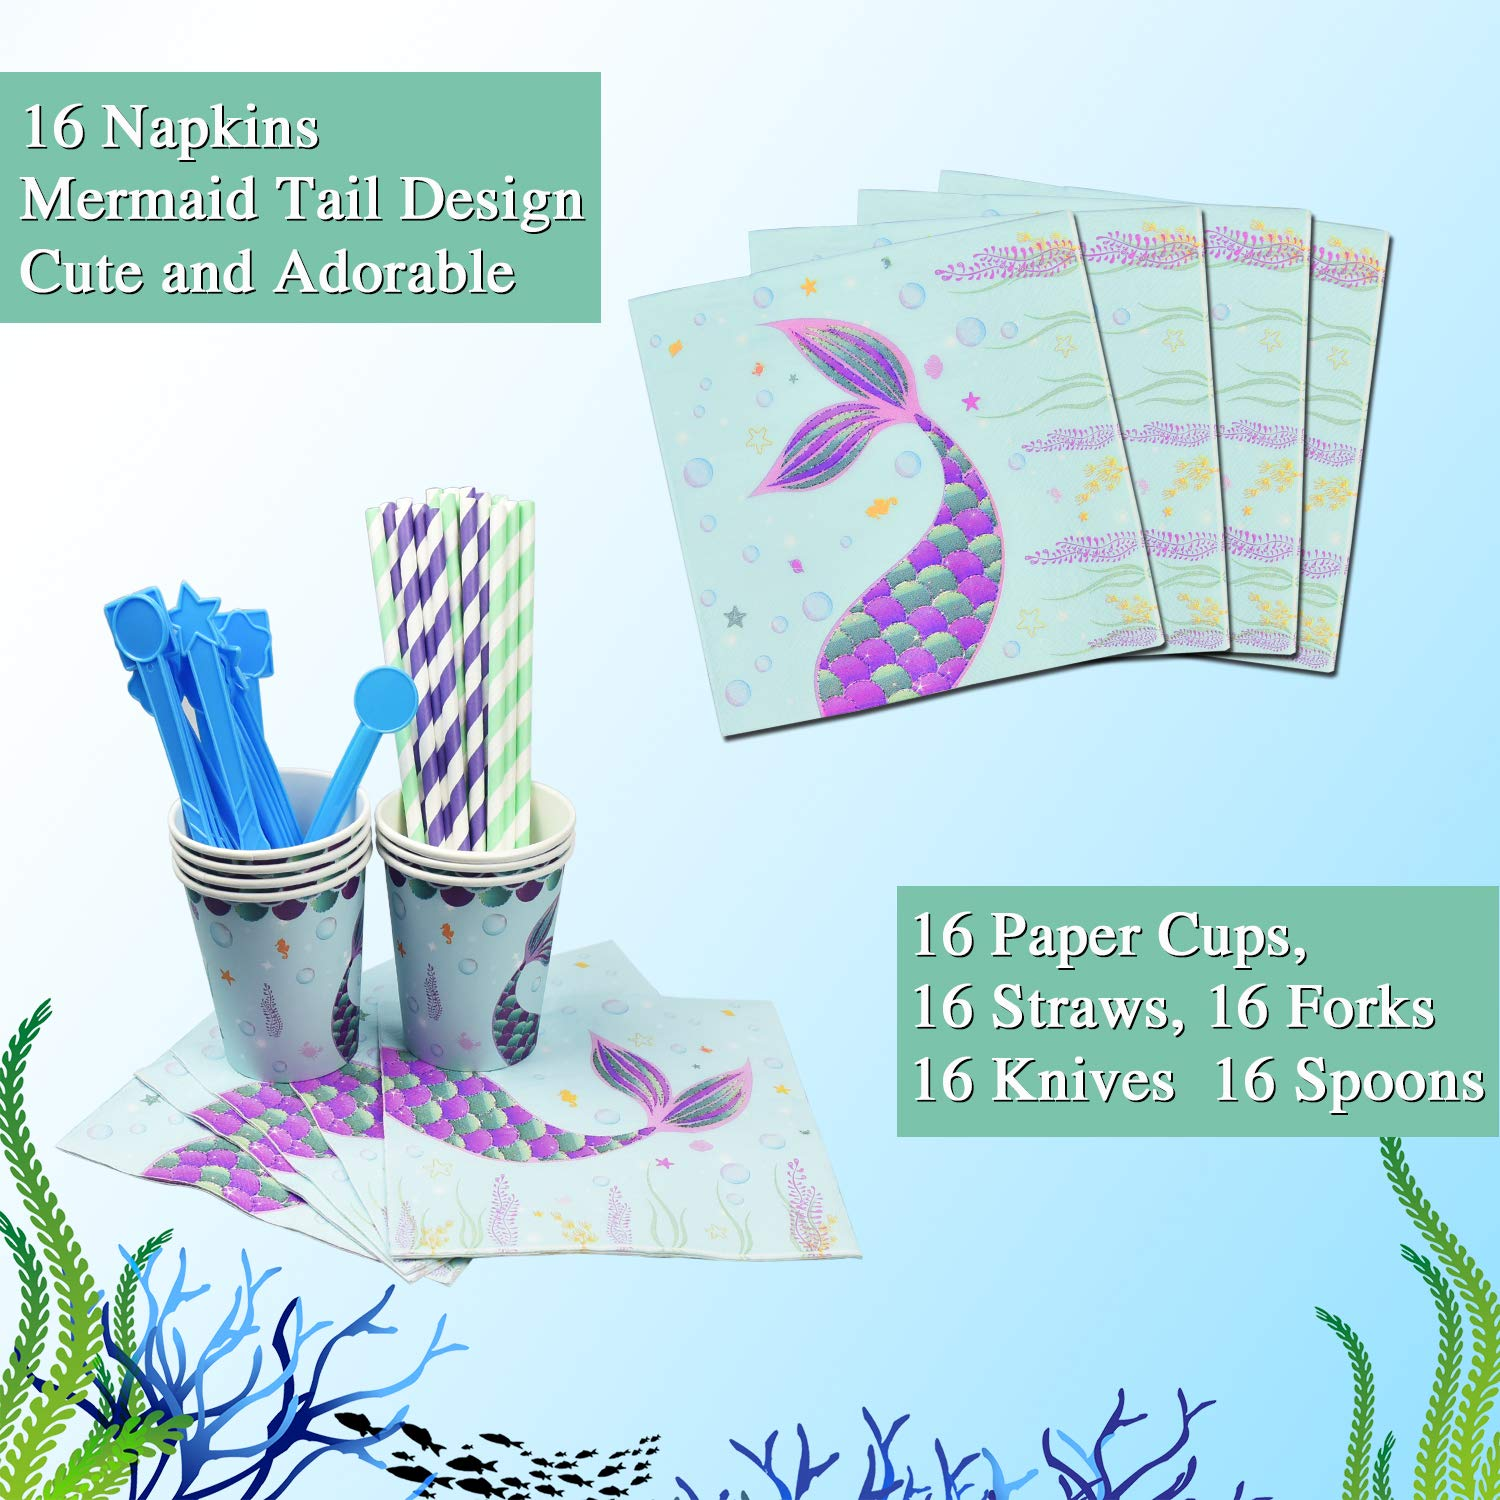 WERNNSAI Pool Mermaid Party Supplies Kit - Party Favors Girls Birthday Party Decoration Cutlery Bag Table Cover Plates Cups Napkins Straws Utensils Birthday Banner & Balloons Serves 16 Guests 169 PCS by WERNNSAI (Image #4)